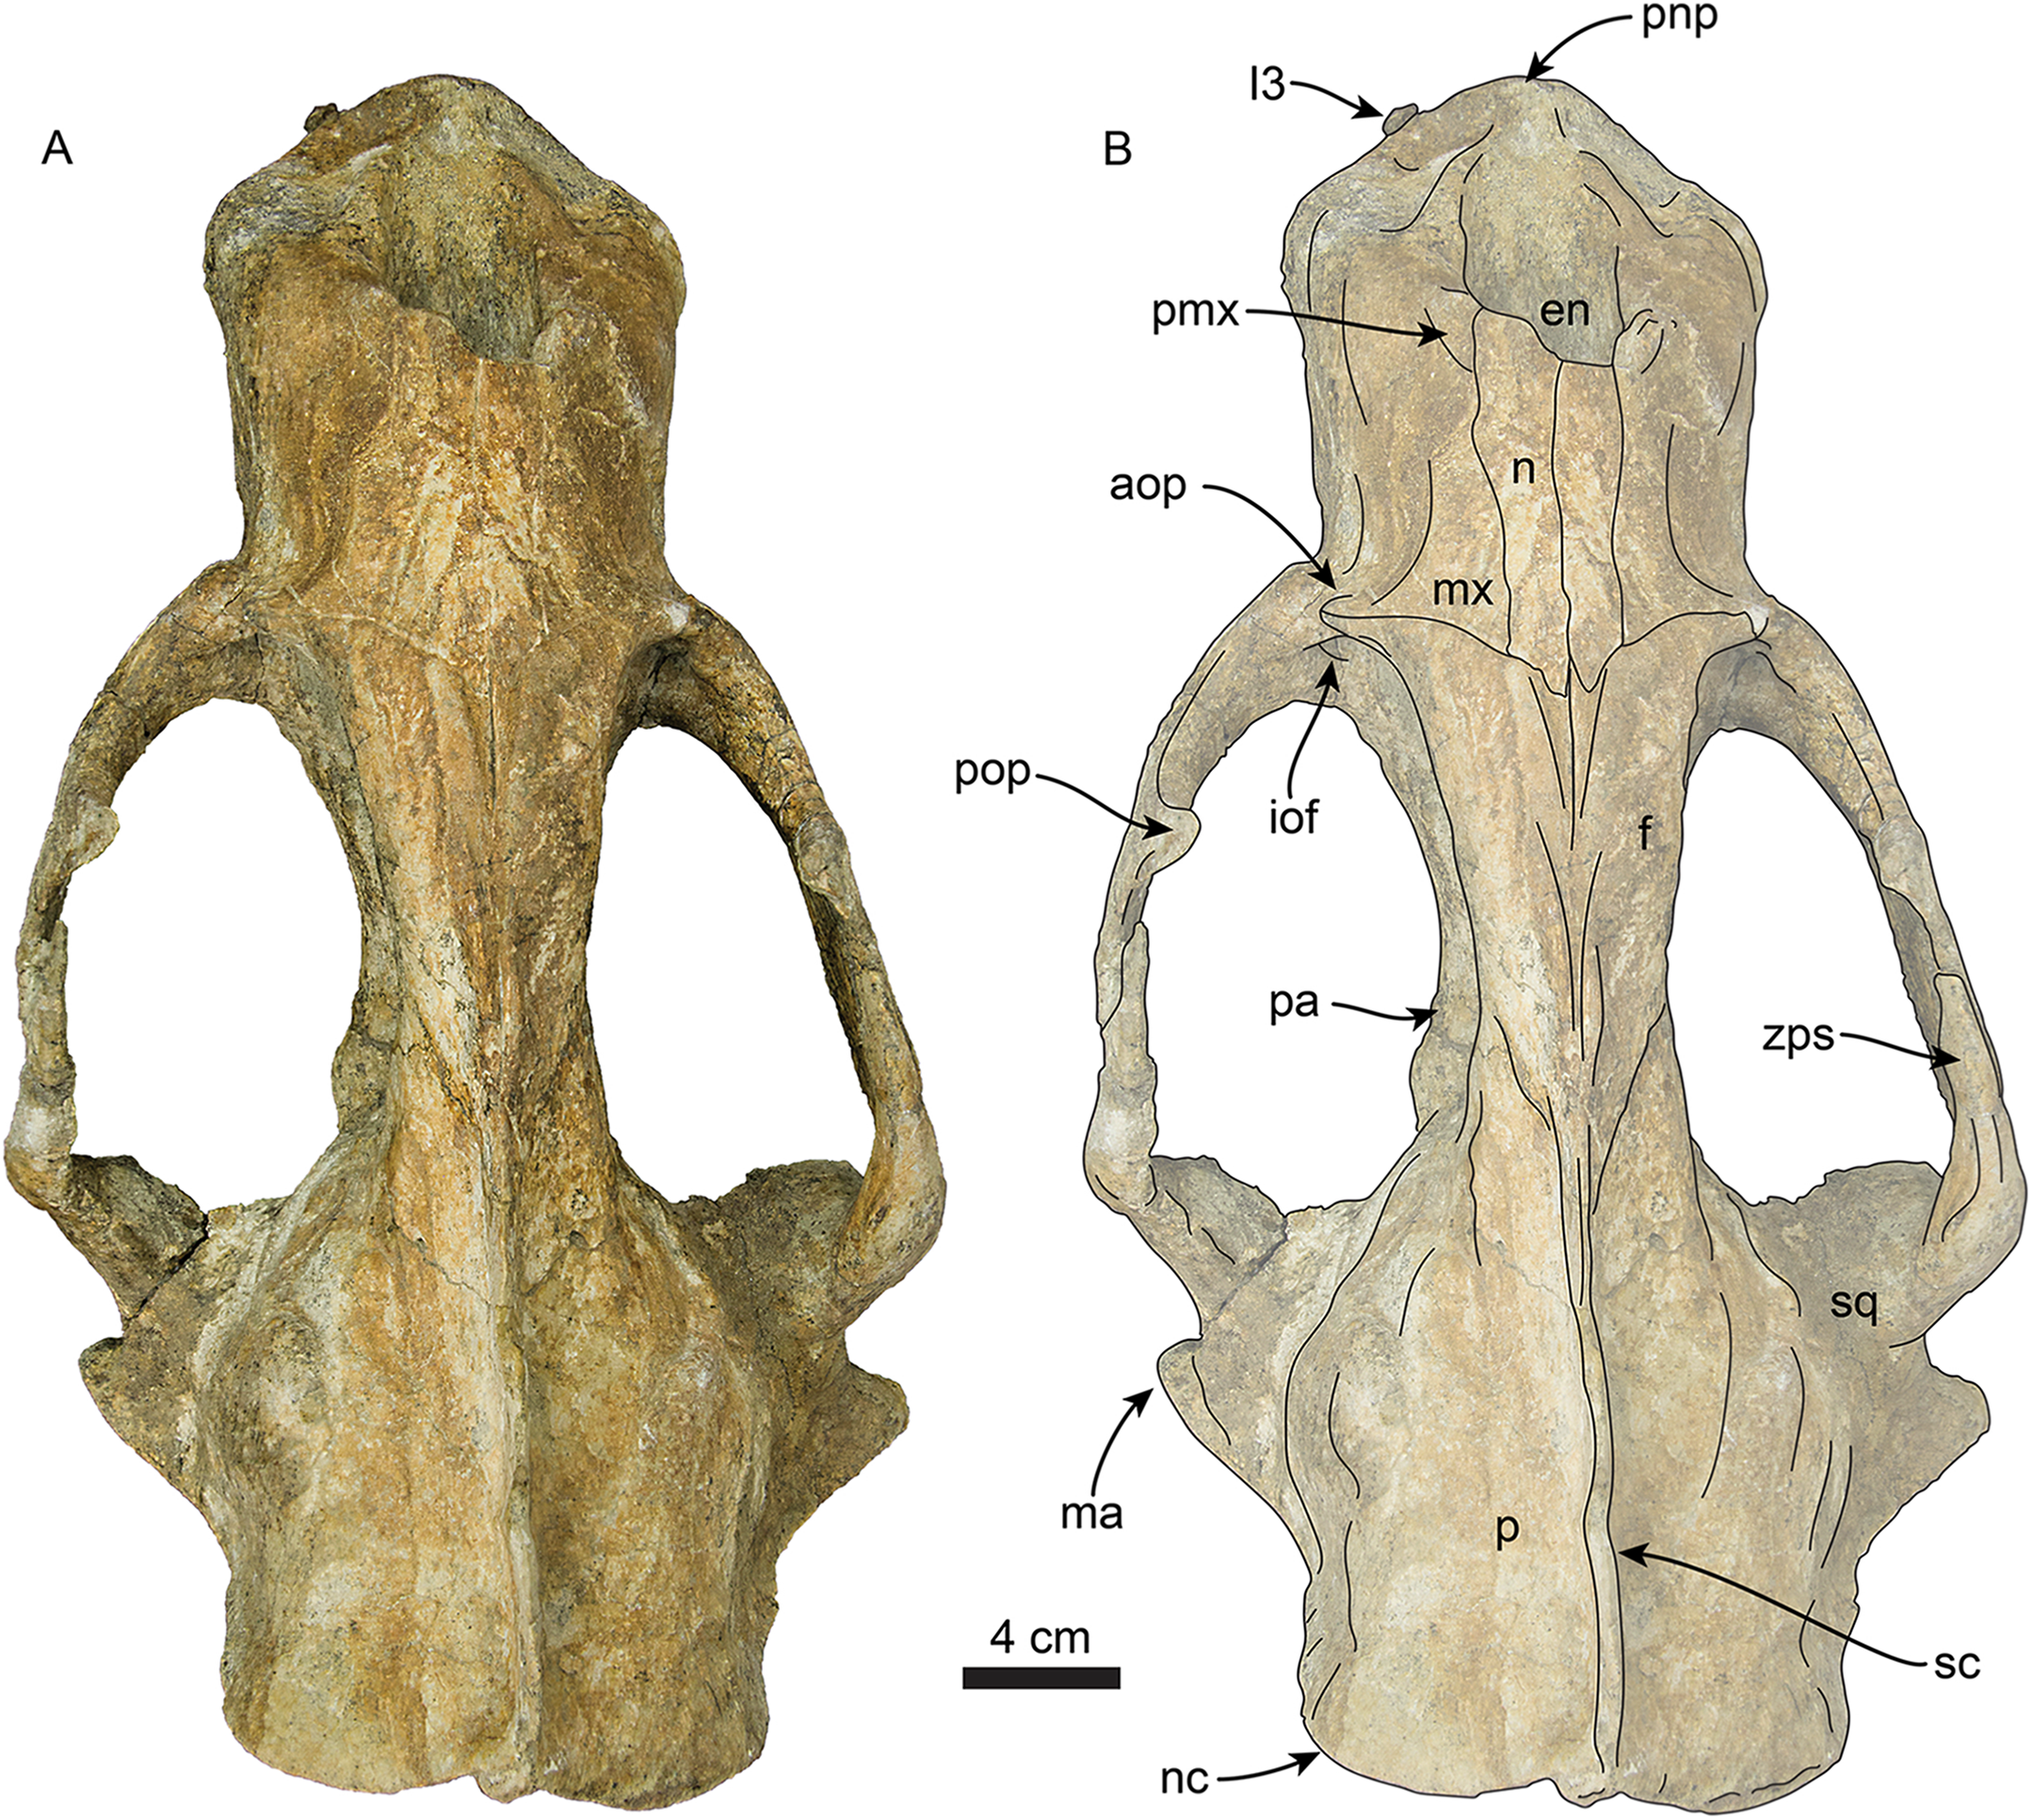 724bf31510 A new tuskless walrus from the Miocene of Orange County, California ...